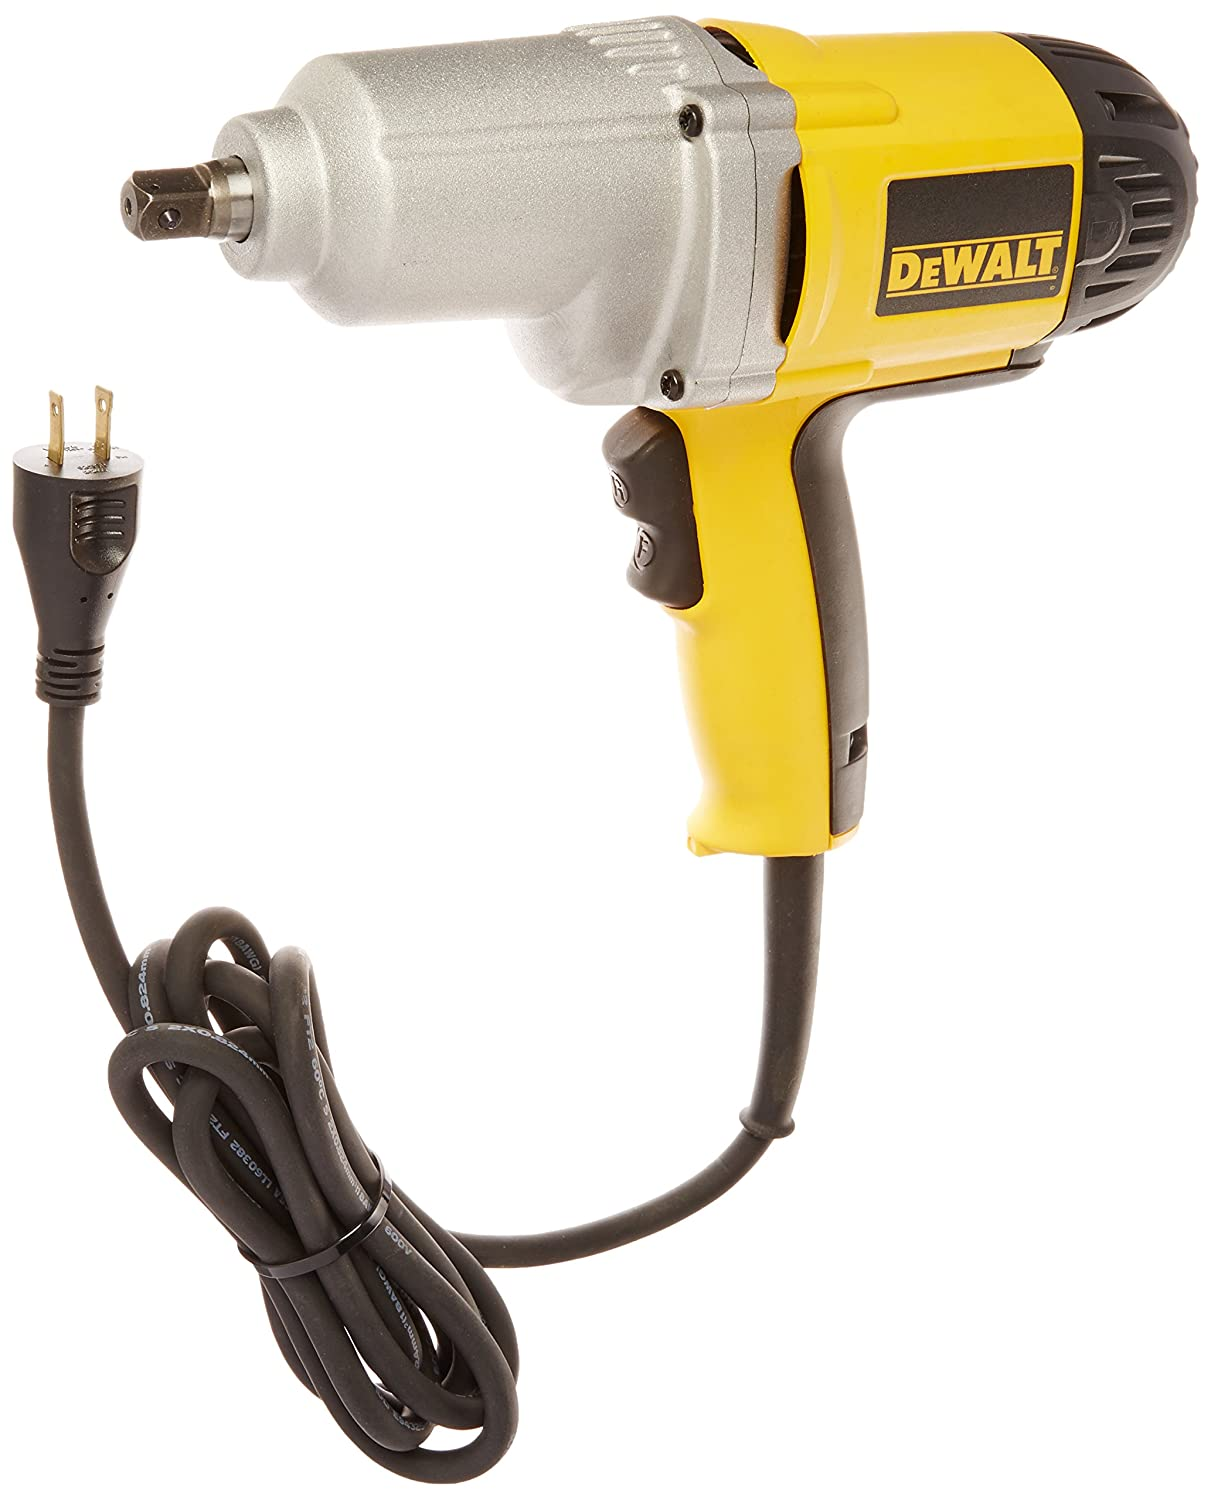 DEWALT DW292 7.5-Amp 1/2-Inch Impact Wrench with Detent Pin Anvil BLAA2